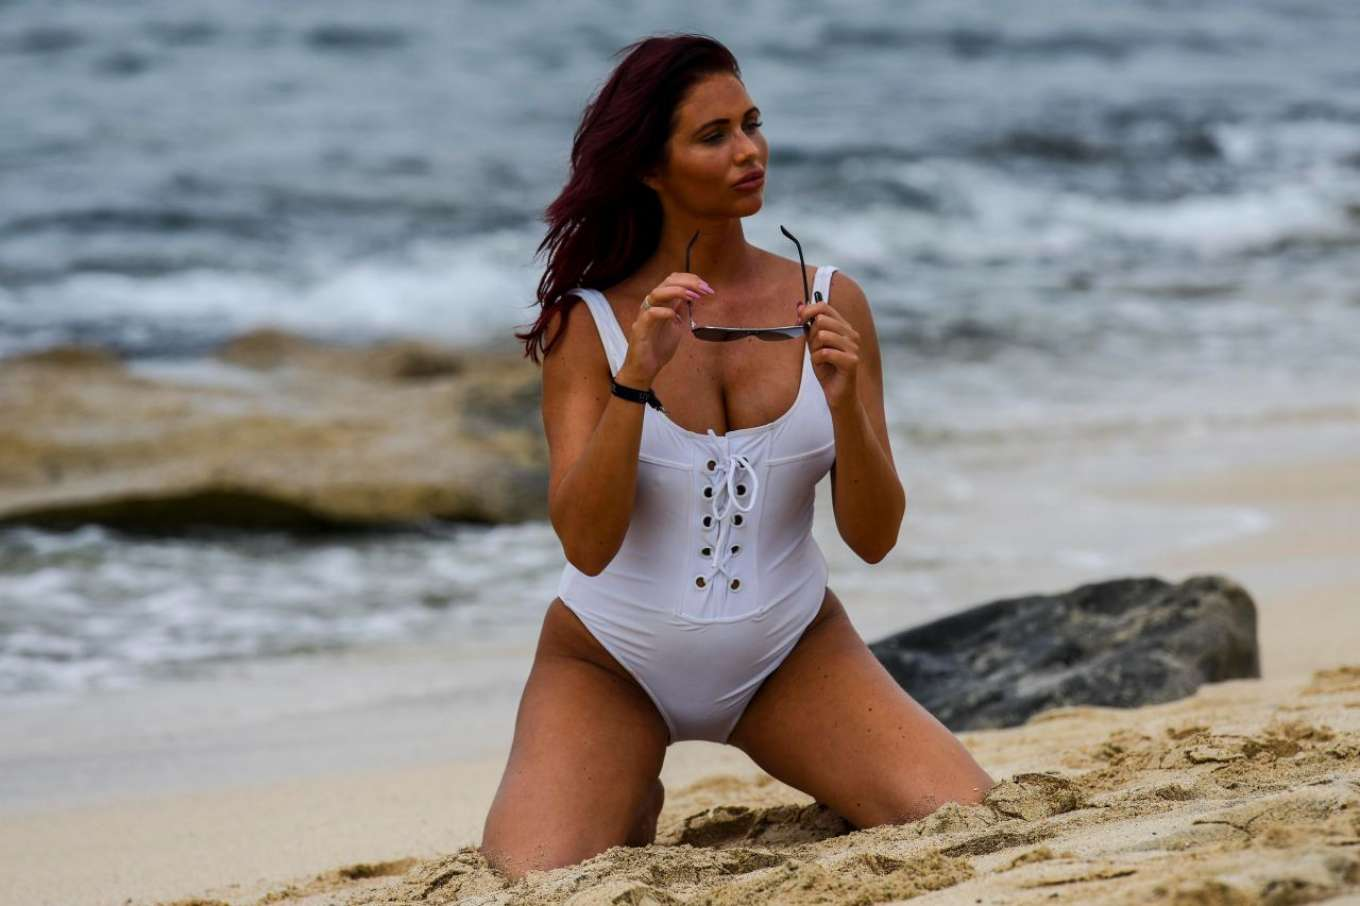 Amy Childs 2017 : Amy Childs in a White Swimsuit 2017 -03